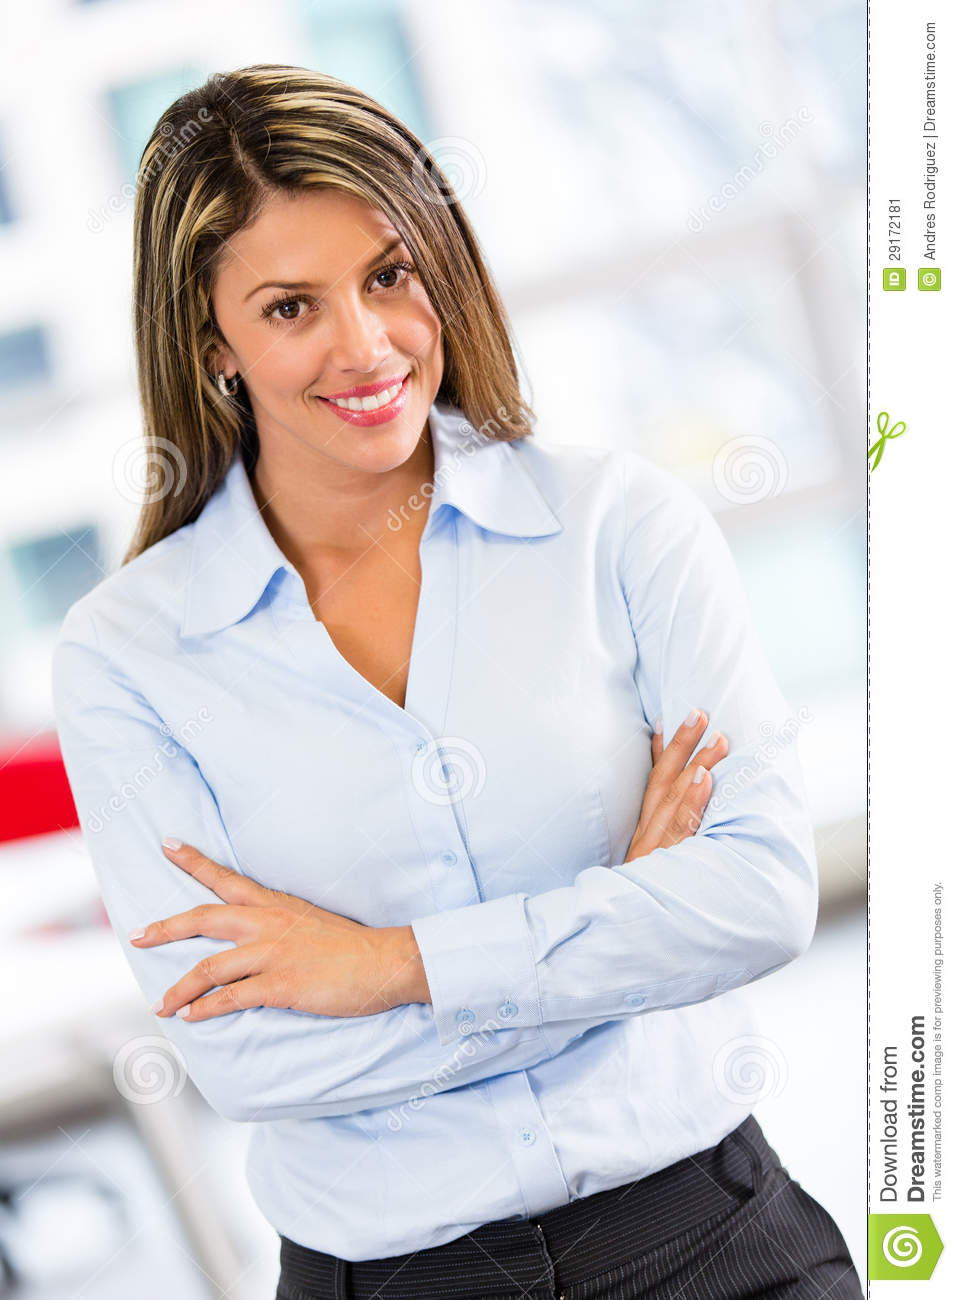 Bossy Business Woman Stock Image Image Of Beautiful